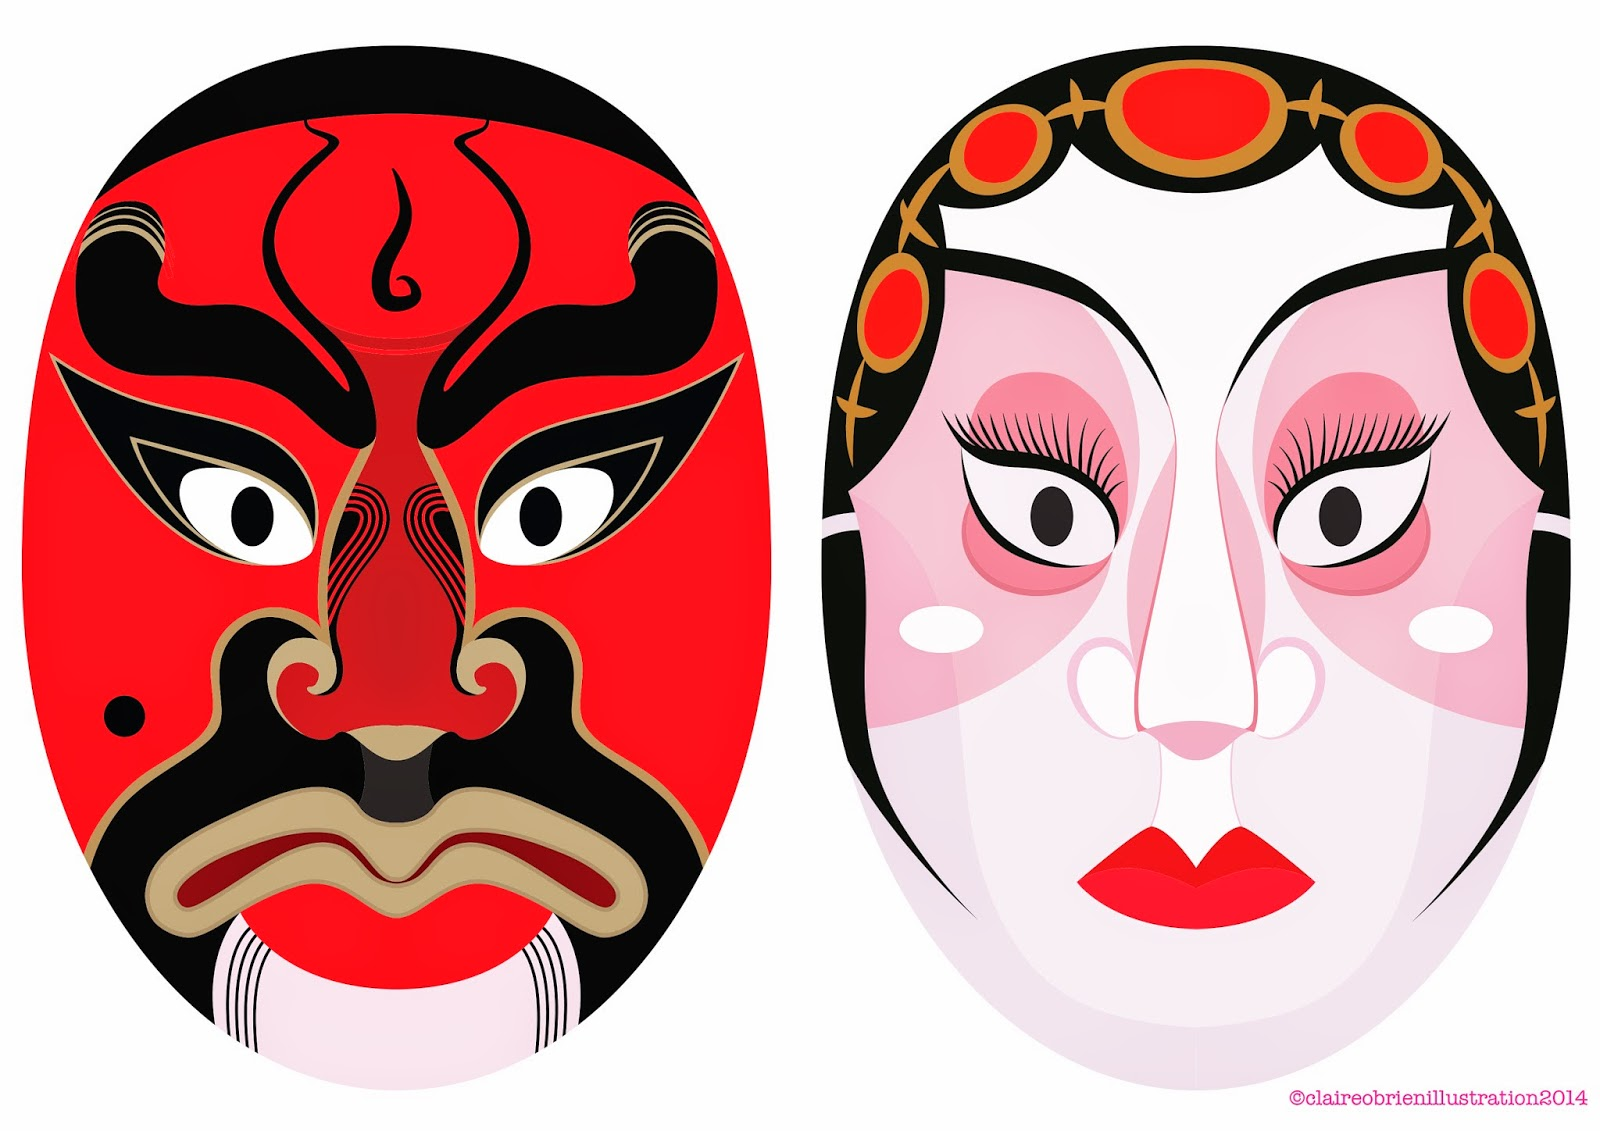 Claire O'Brien Illustration, Chinese, Hong Kong, Chinese Opera Masks, Peking, Beijing, Opera